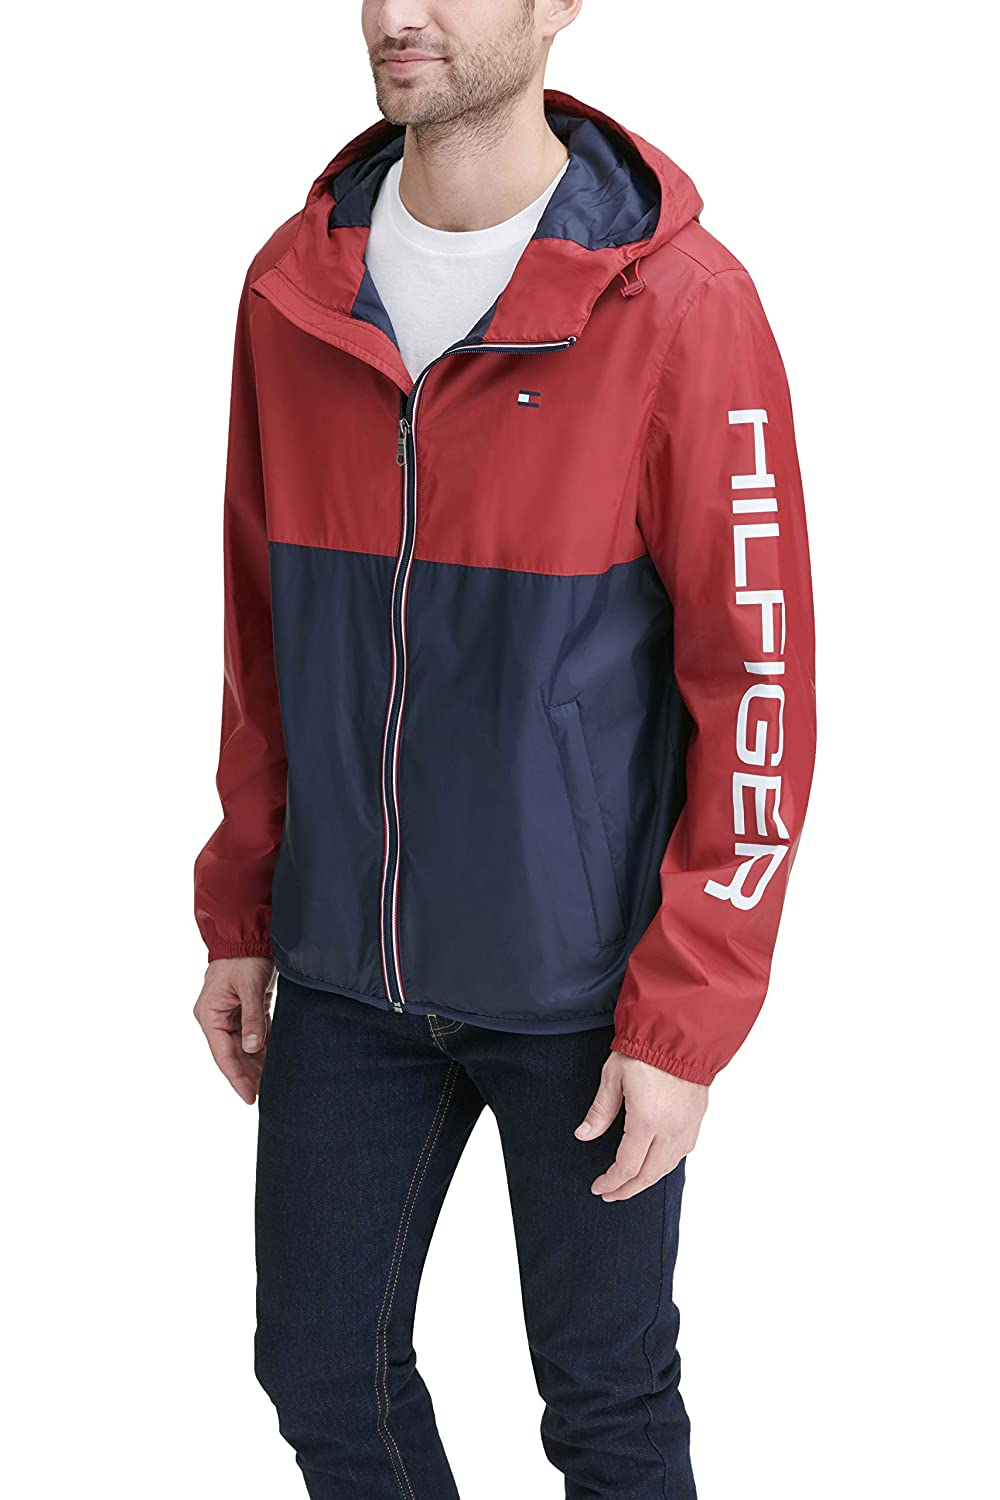 97f304e3 Tommy Hilfiger Mens Colorblocked Logo Rain Slicker Jacket Rain Jacket:  Amazon.ca: Clothing & Accessories